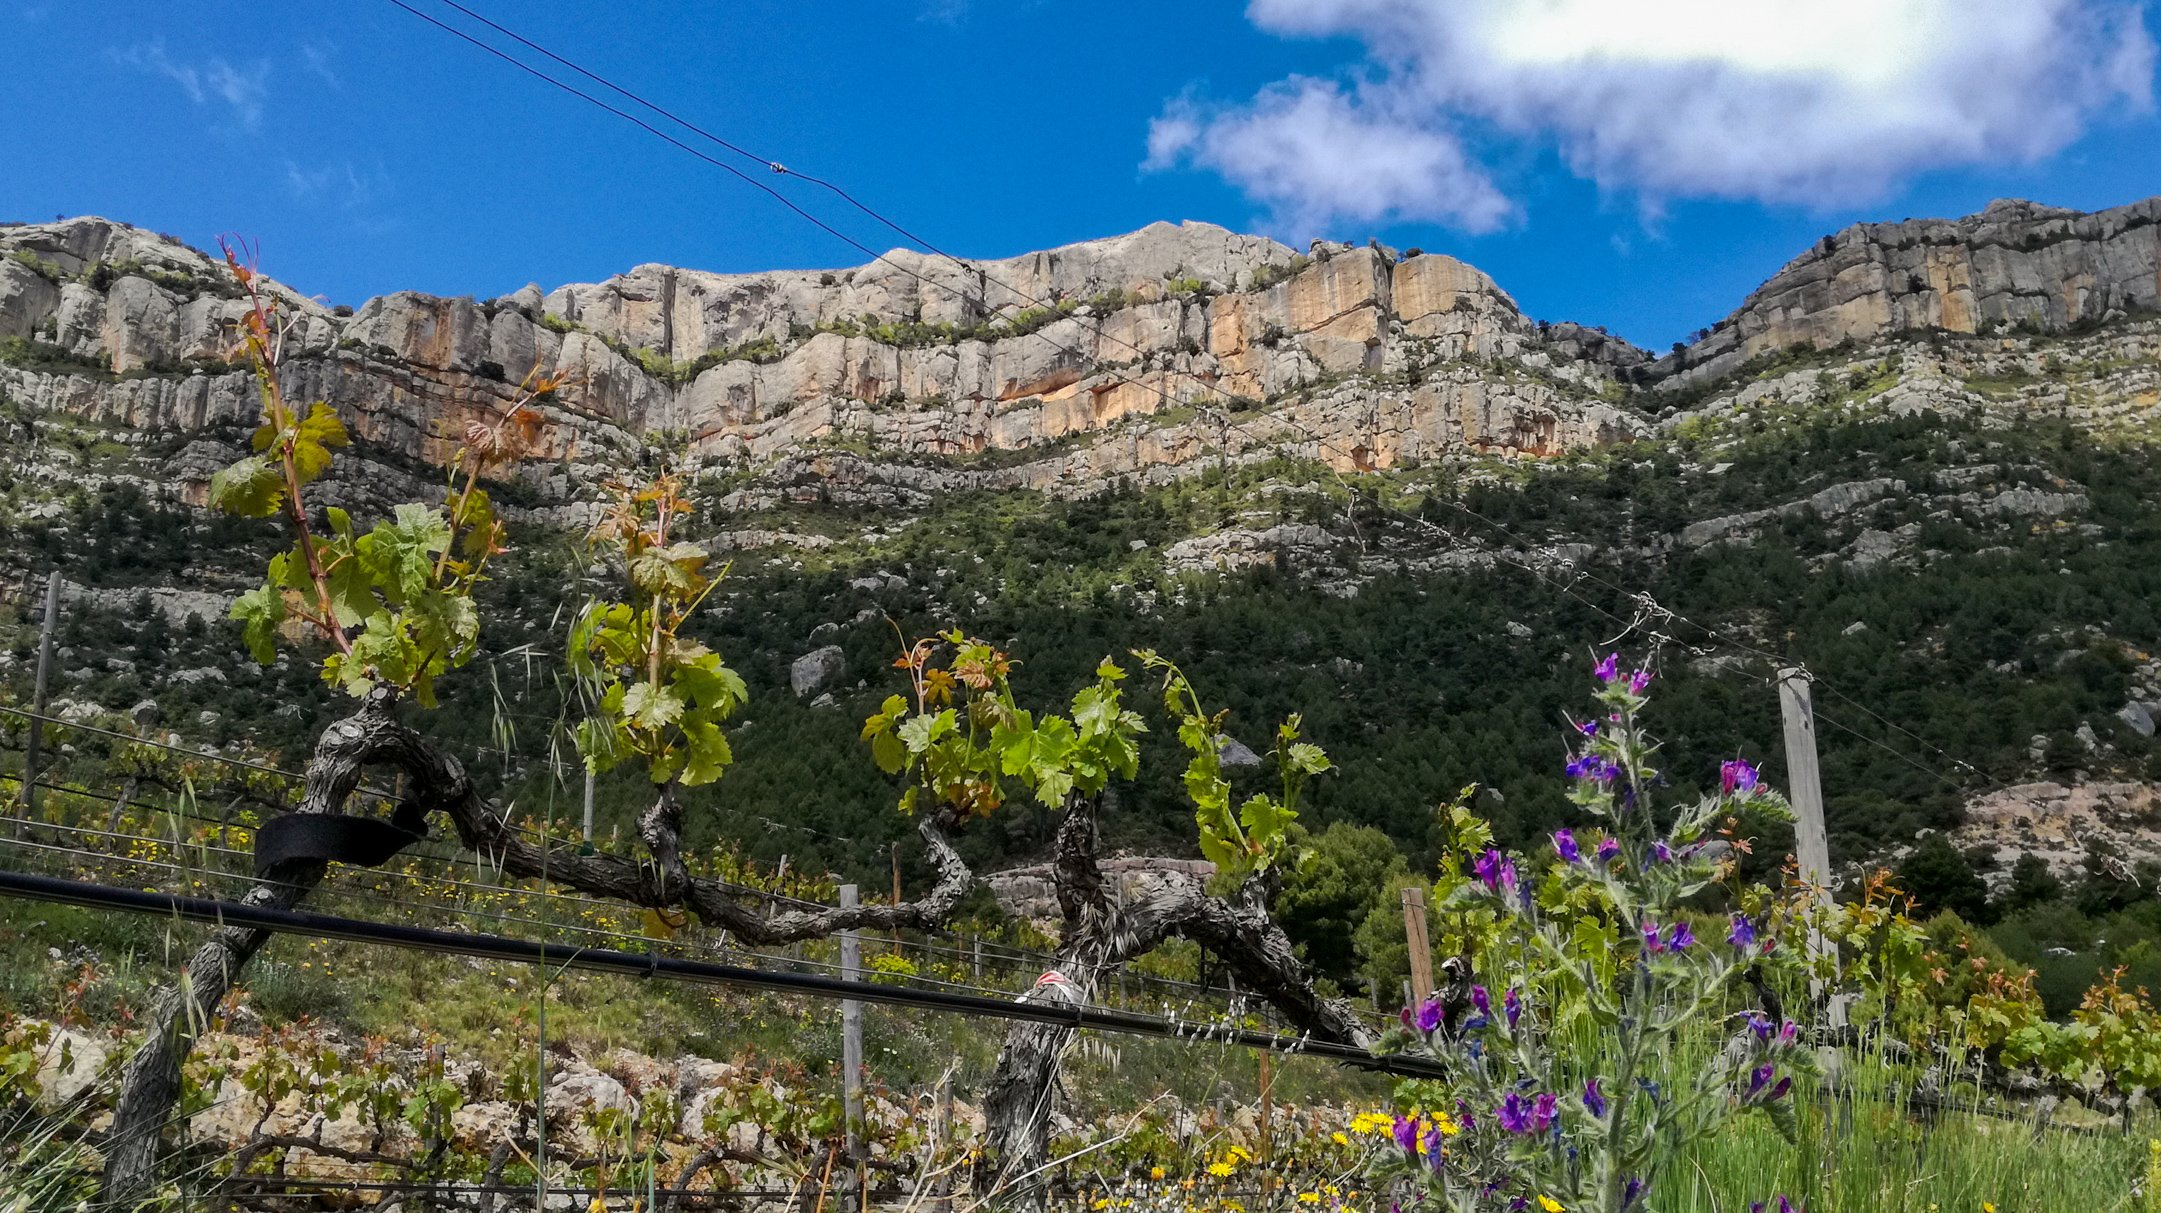 Priorat vineyards on Montsant, Cartoixa d'Escaladei Hike